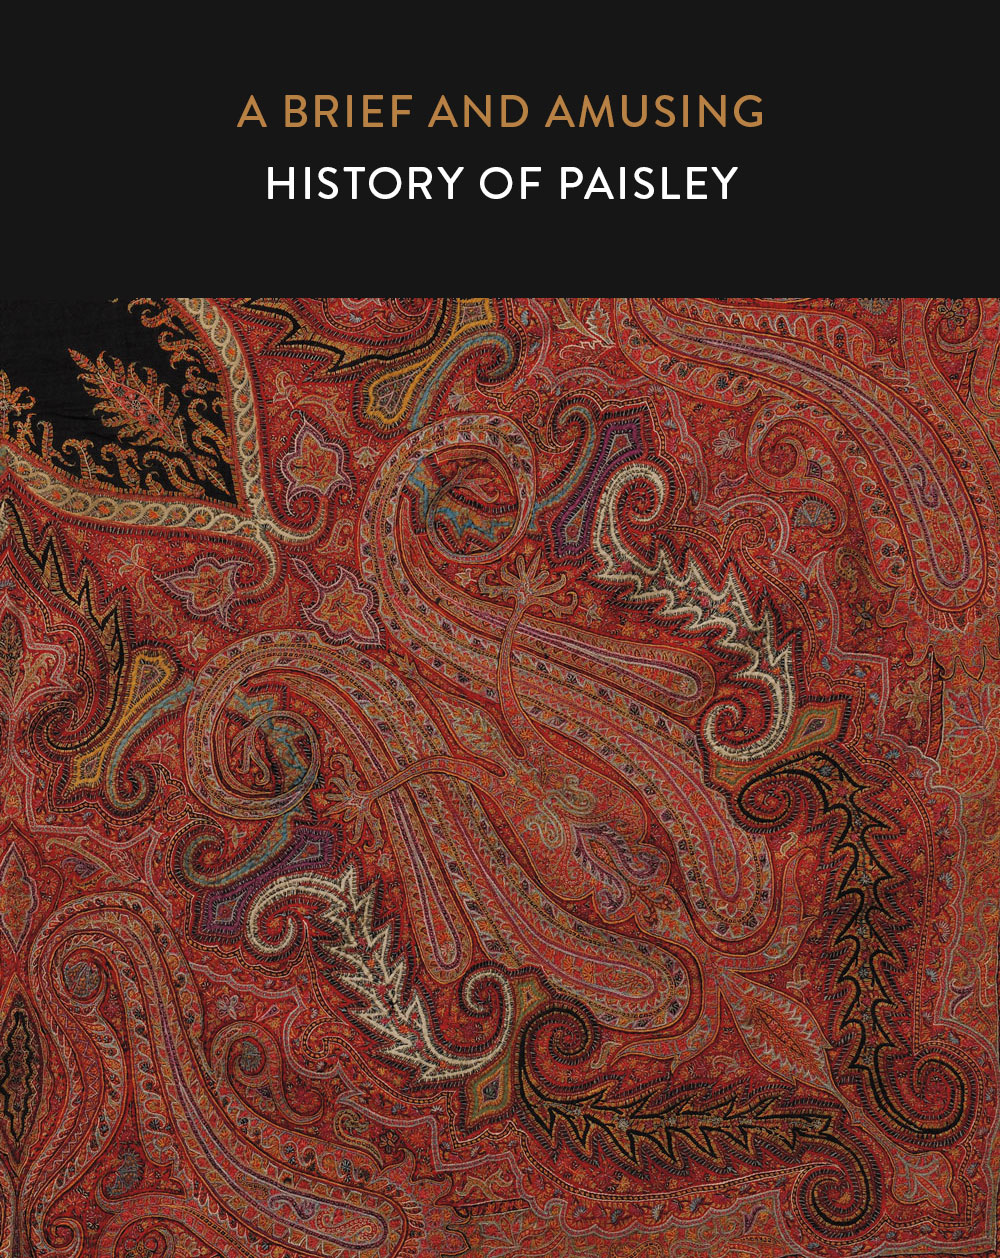 A Brief and Amusing History of Paisley | Suzy Quilts https://suzyquilts.com/history-of-paisley